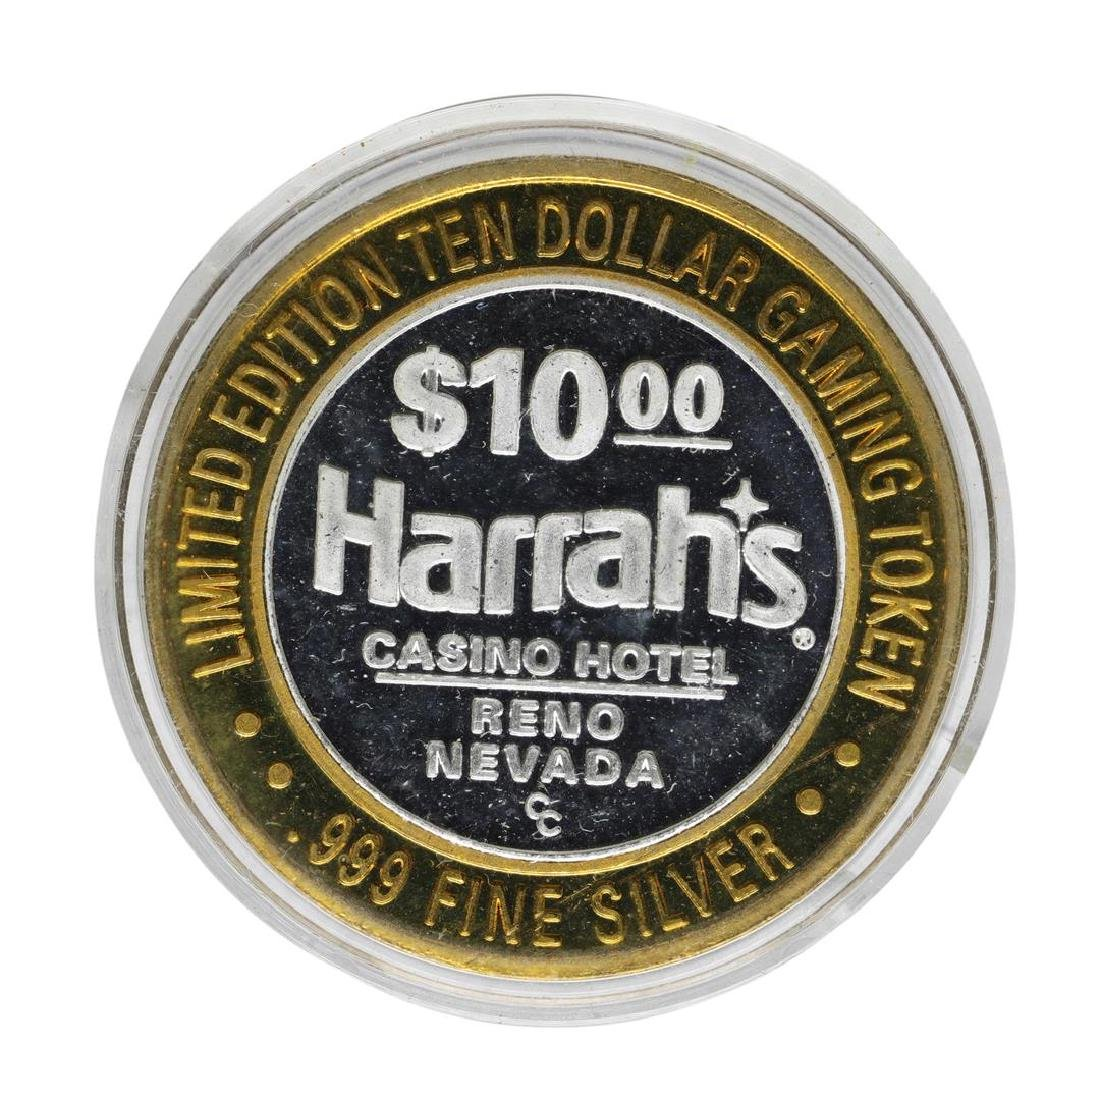 .999 Silver Harrahs Casino Reno Nevada $10 Casino